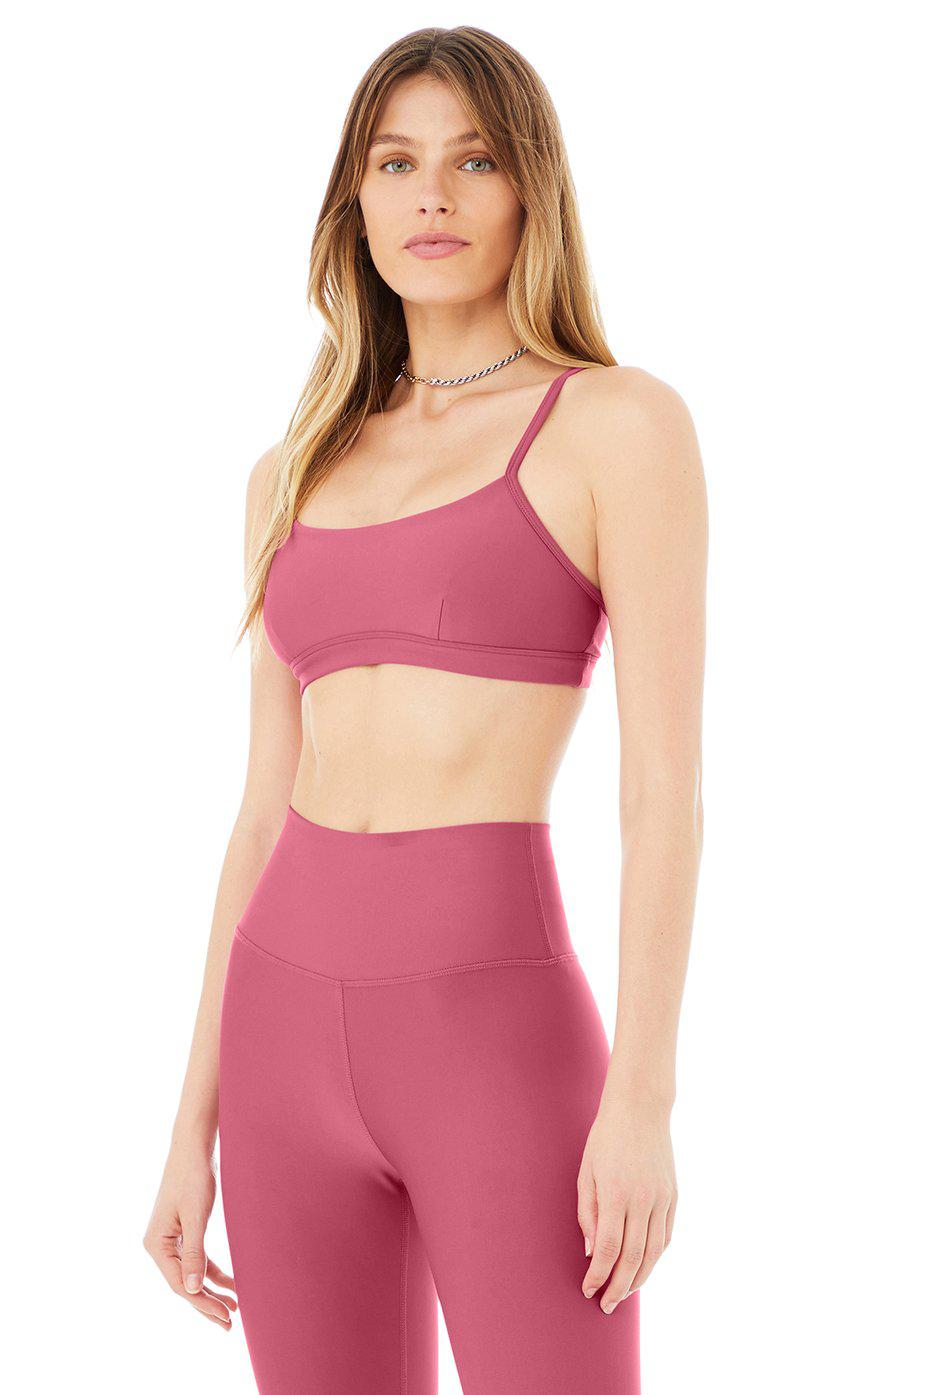 AIRLIFT INTRIGUE BRA